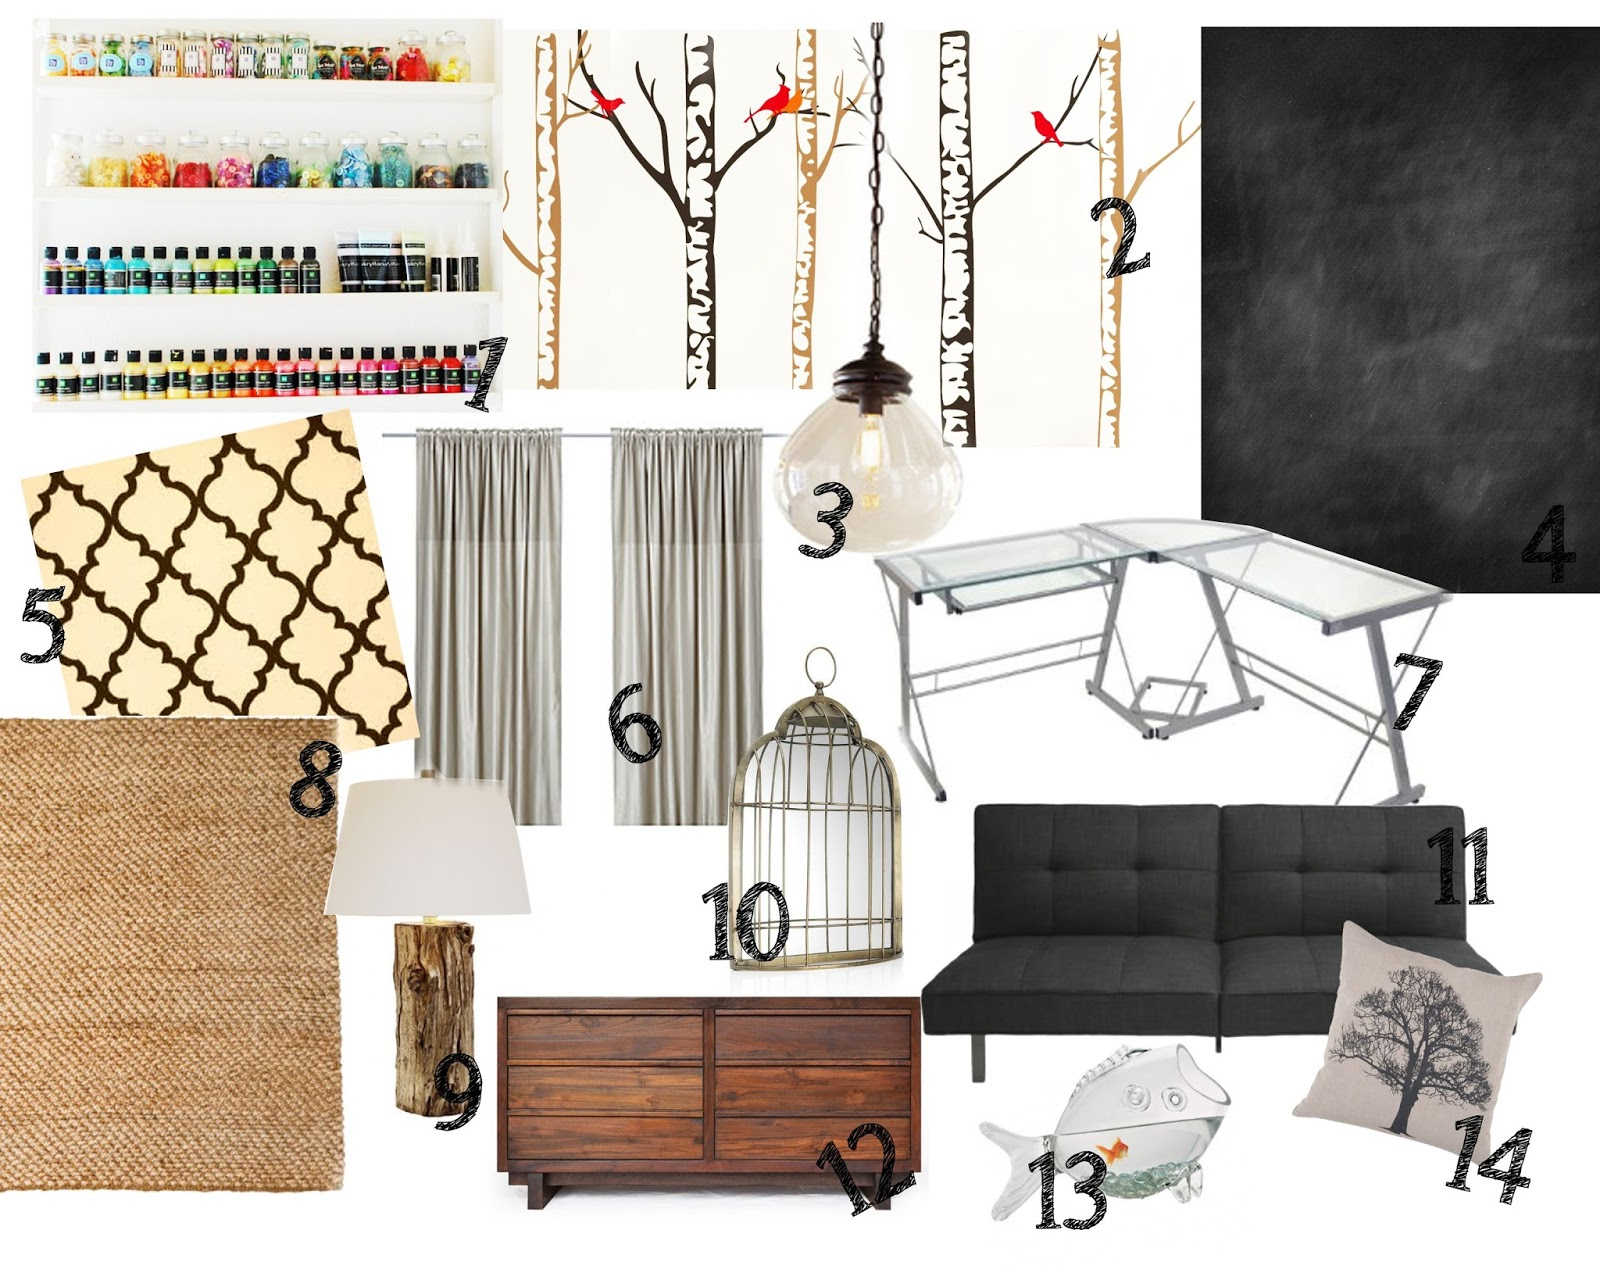 Craft Room Inspiration Board title=